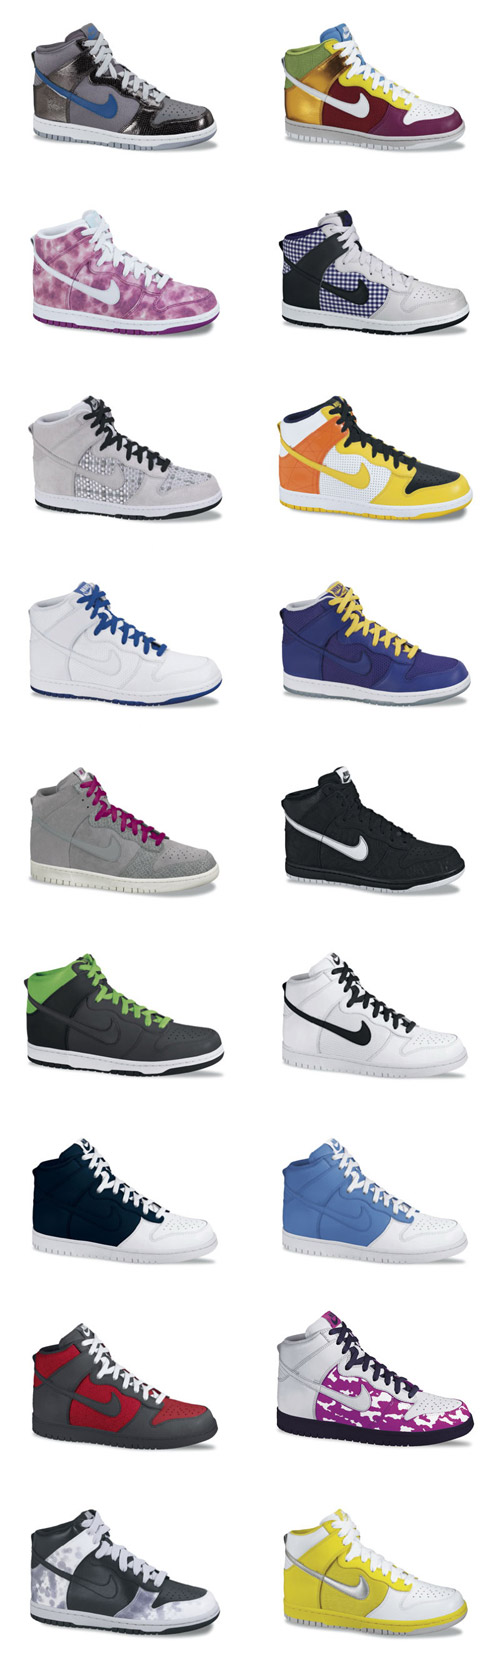 nike-dunk-preview-09-03